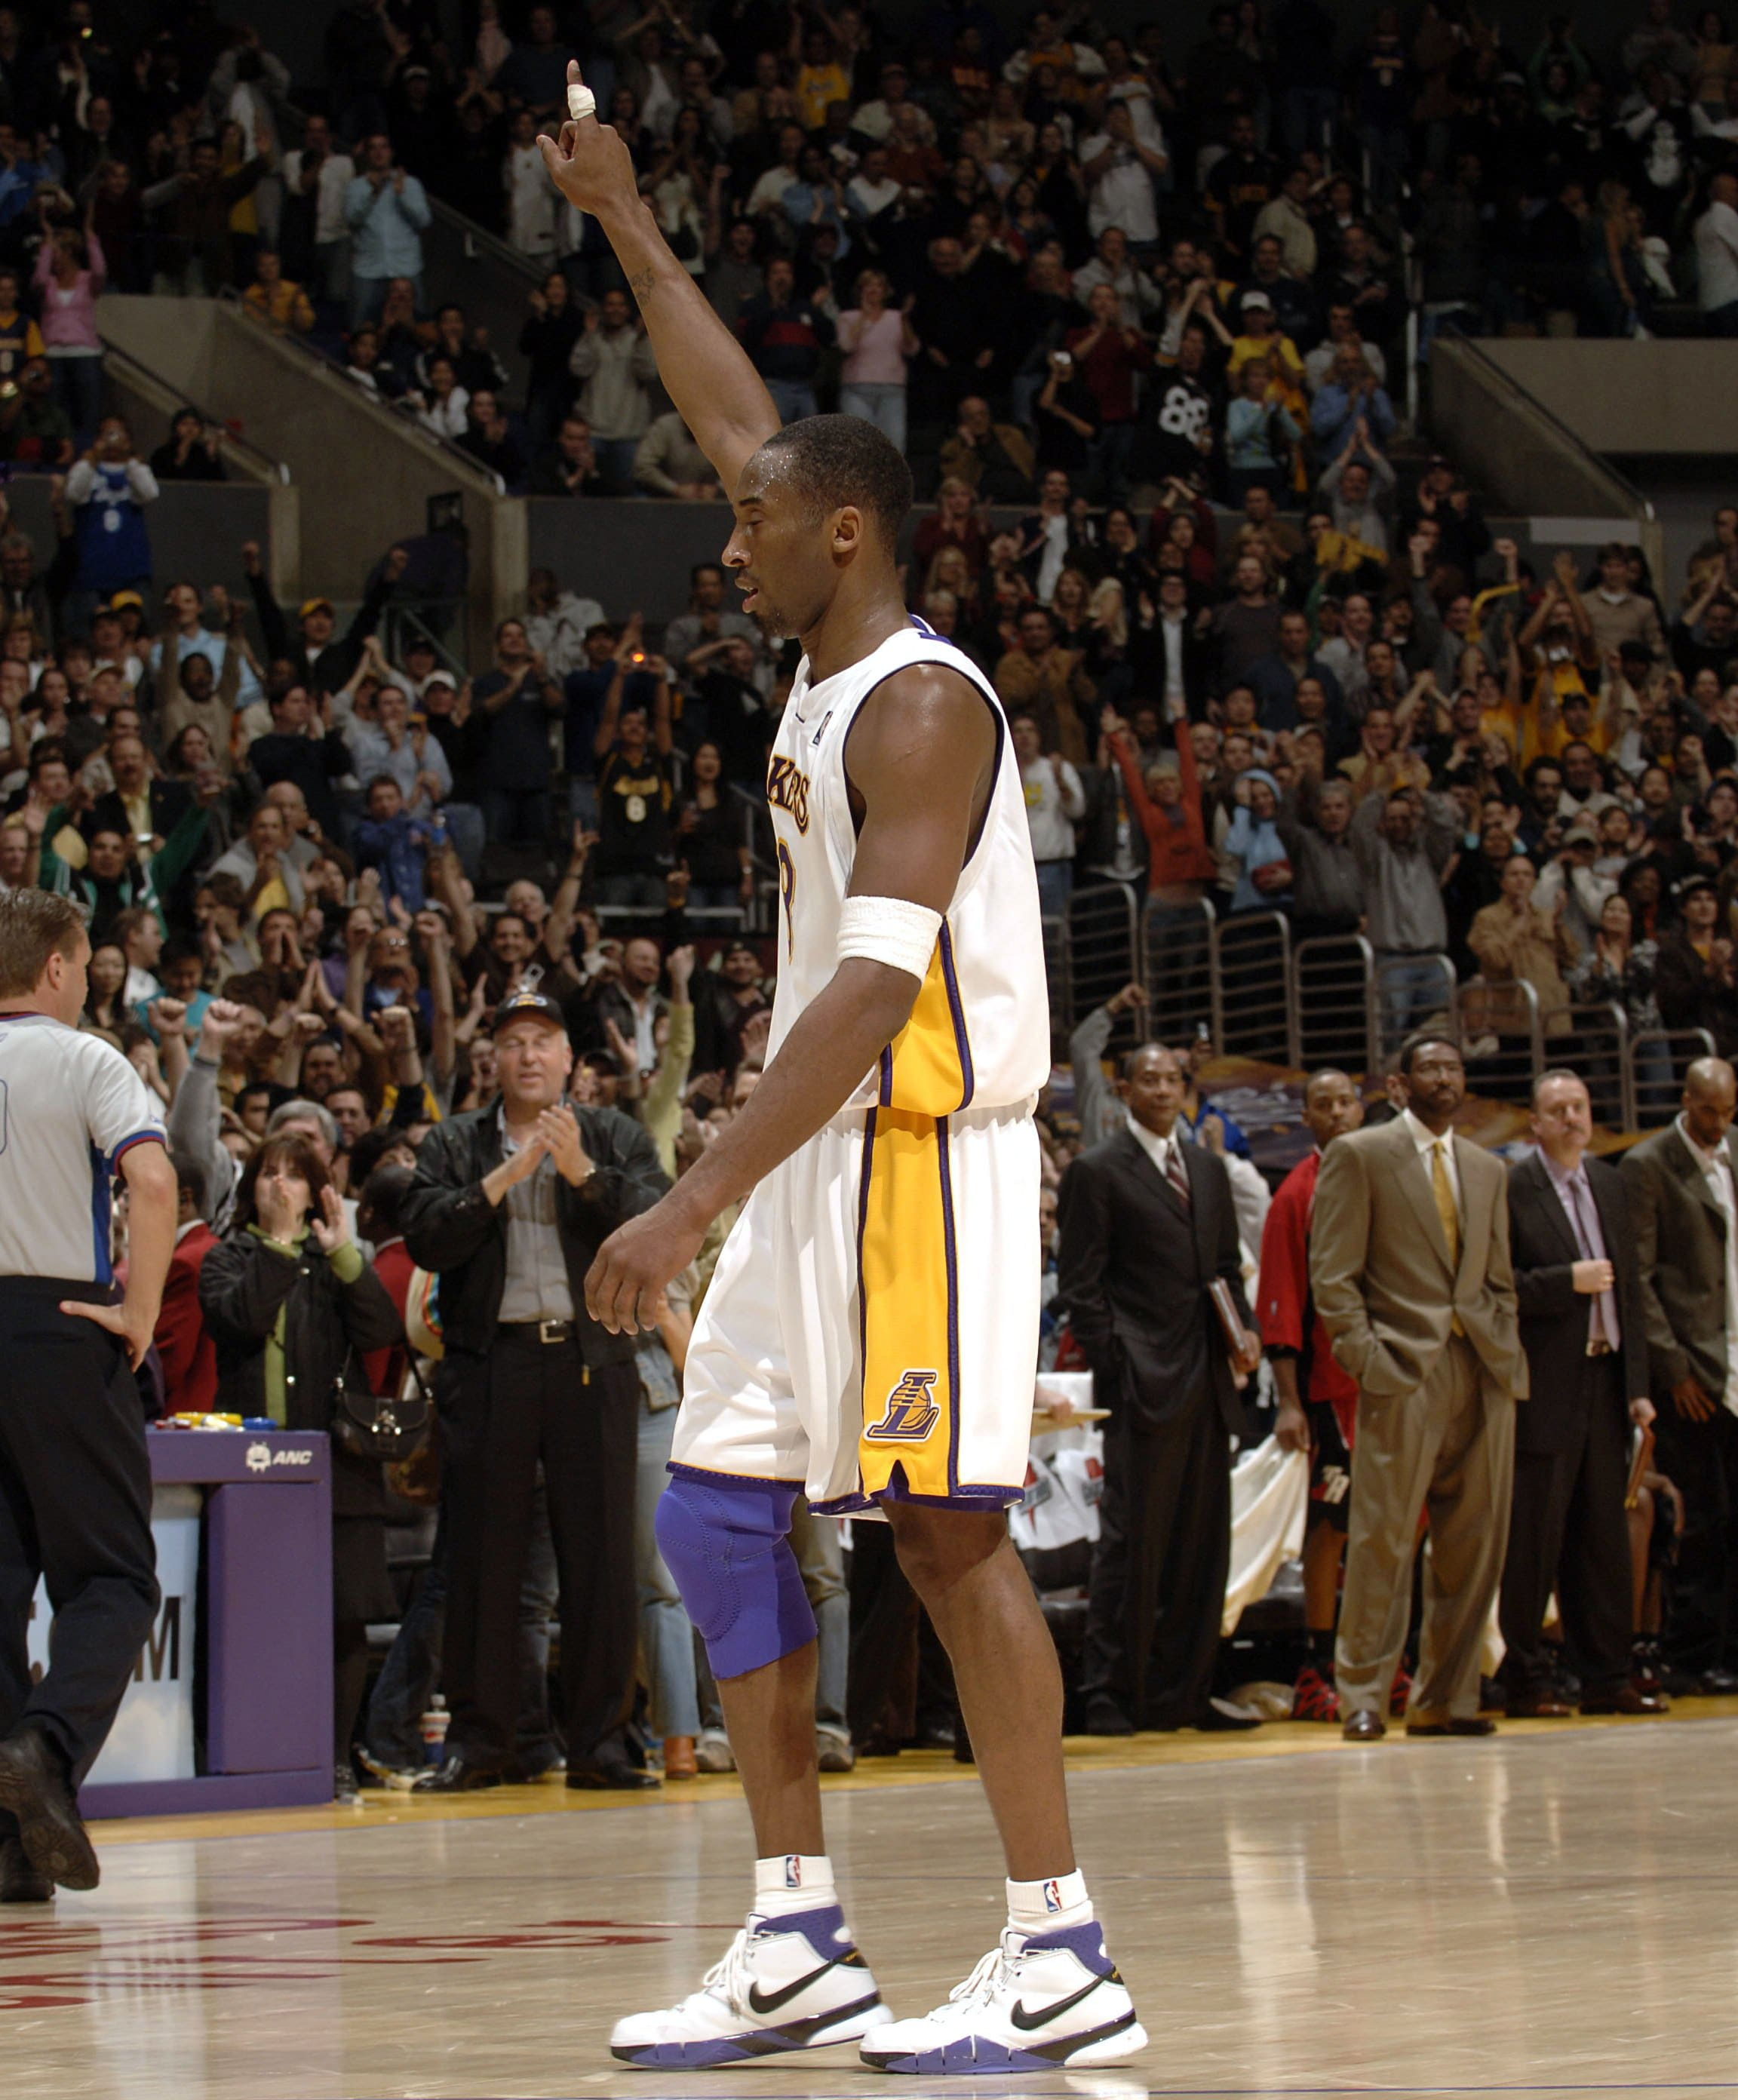 Kobe Bryant vs. Toronto Raptors January 22, 2006